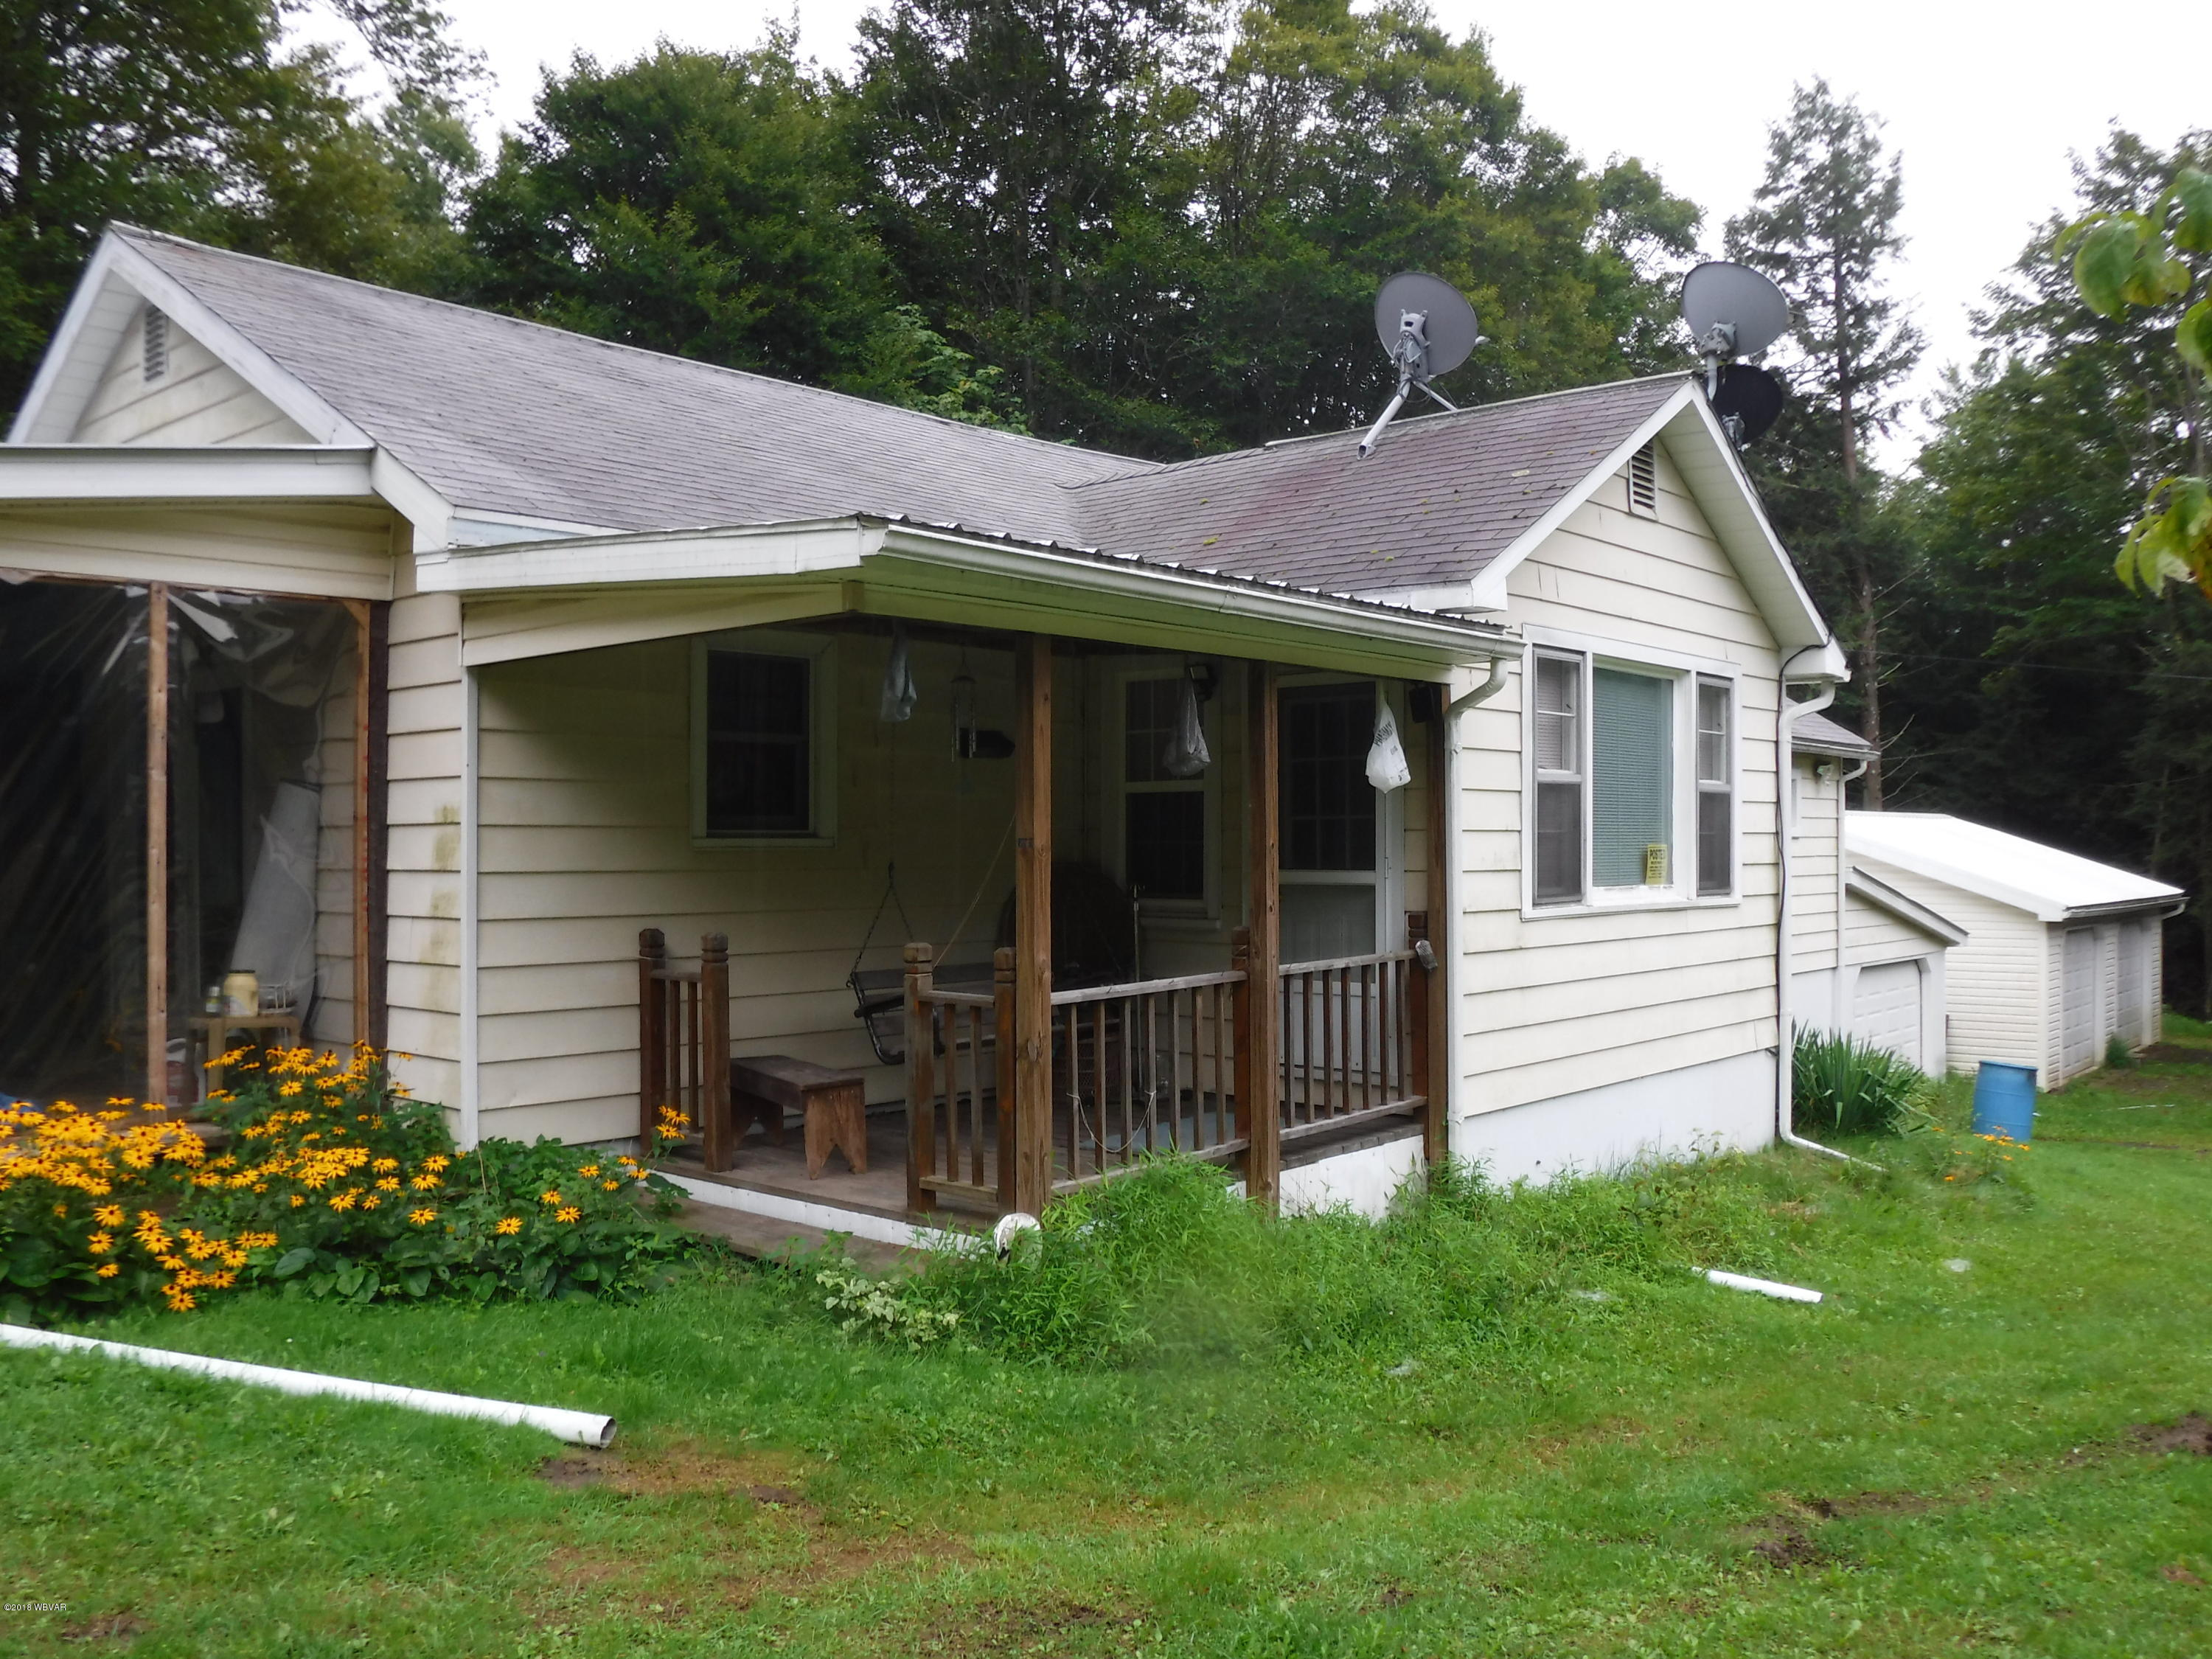 570 WORLDS END ROAD,Muncy Valley,PA 17758,3 Bedrooms Bedrooms,1 BathroomBathrooms,Residential,WORLDS END,WB-85109